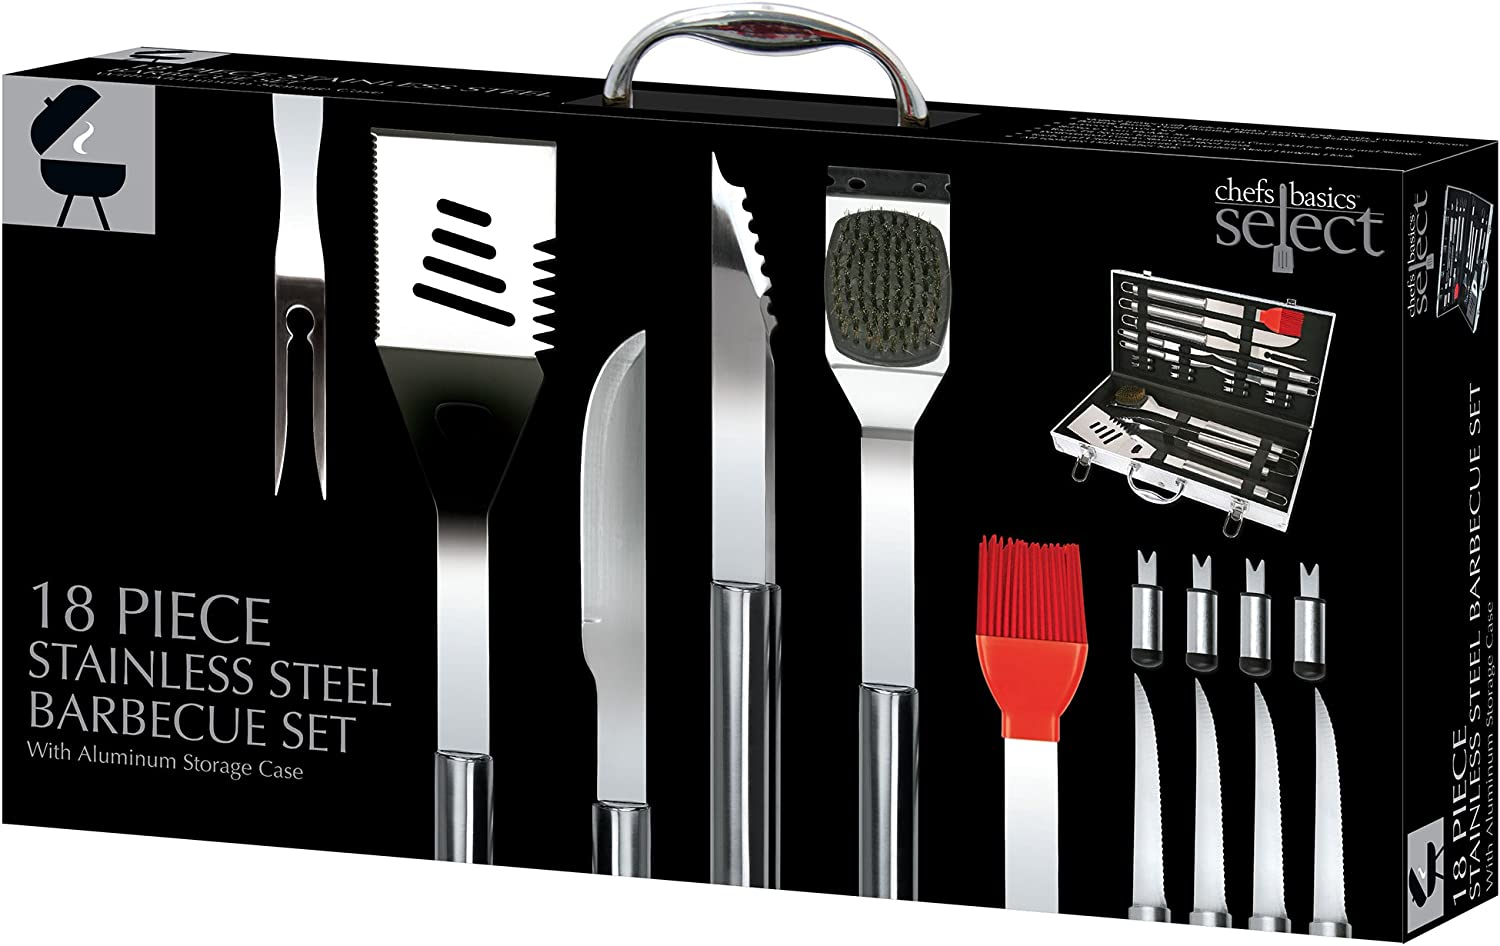 Chefs Basics HW5305 18-Piece Stainless-Steel Barbecue Grilling Tool Accessories Utensils Set with Spatula, Tongs, Forks, Brush, and Carrying Case